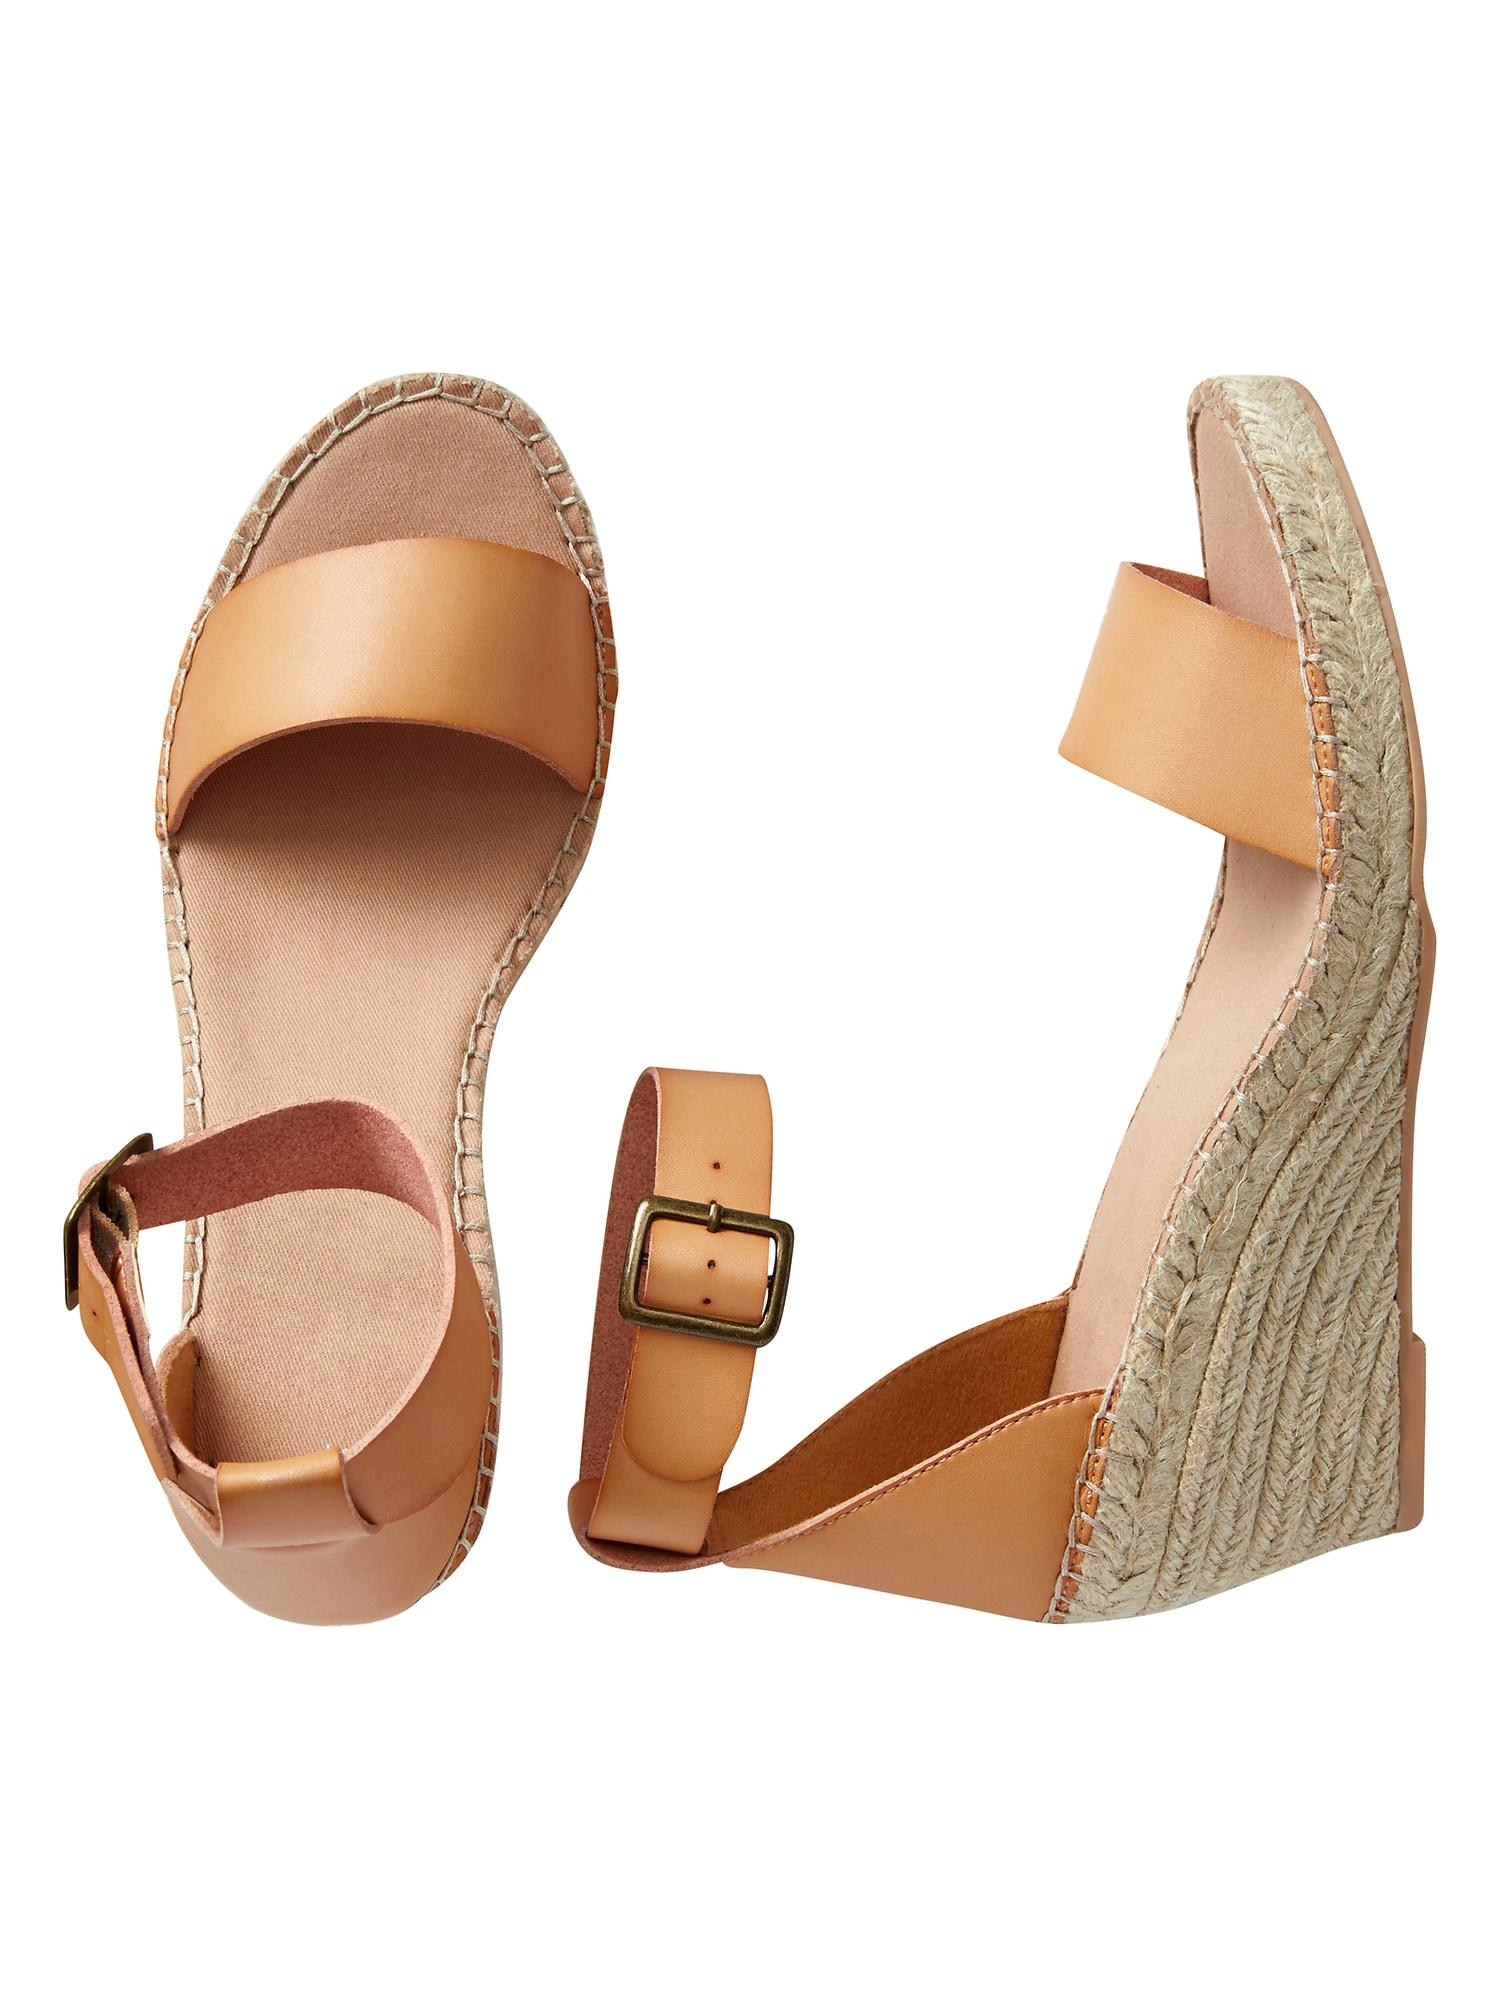 60e1f49e8c8 Lyst - GAP Factory Espadrille Wedge In Faux Leather in Brown